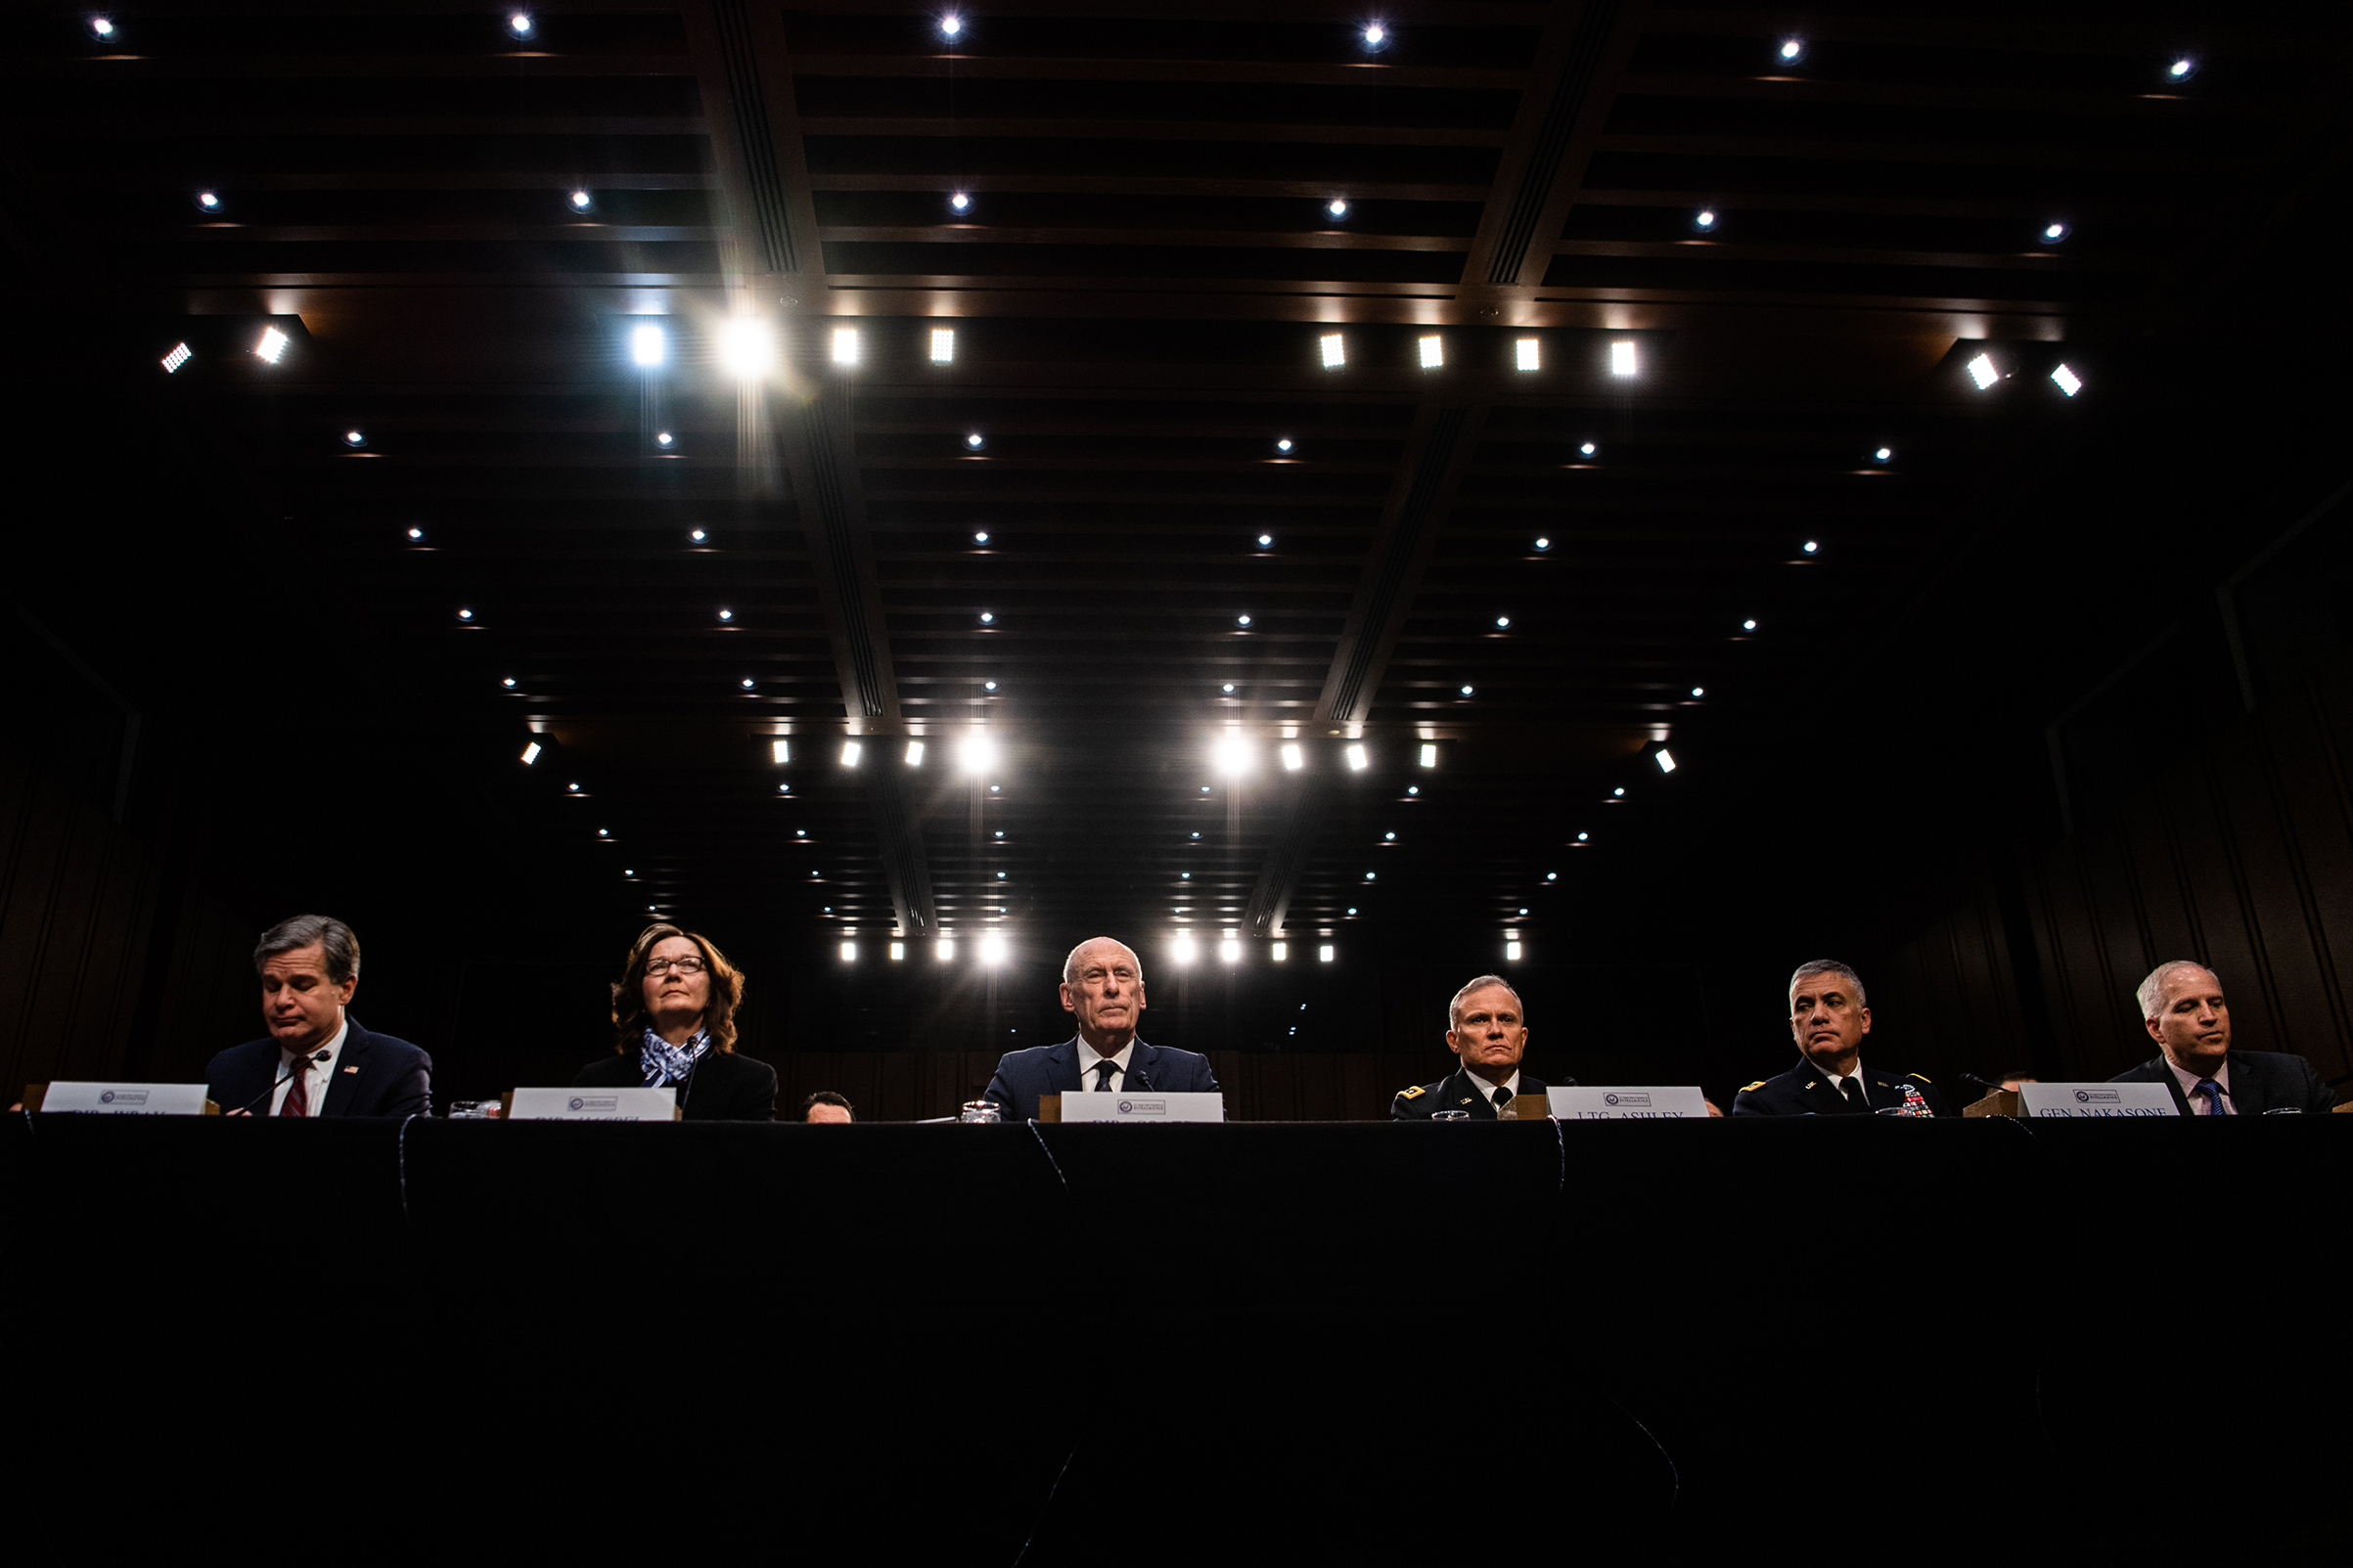 From left, FBI Director Christopher Wray, CIA Director Gina Haspel, Director of National Intelligence Daniel Coats, Defense Intelligence Agency Director Gen. Robert Ashley, National Security Agency Director Gen. Paul Nakasone and National Geospatial-Intelligence Agency Director Robert Cardillo testify to the Senate Intelligence Committee on worldwide threats on Jan. 29, 2019.